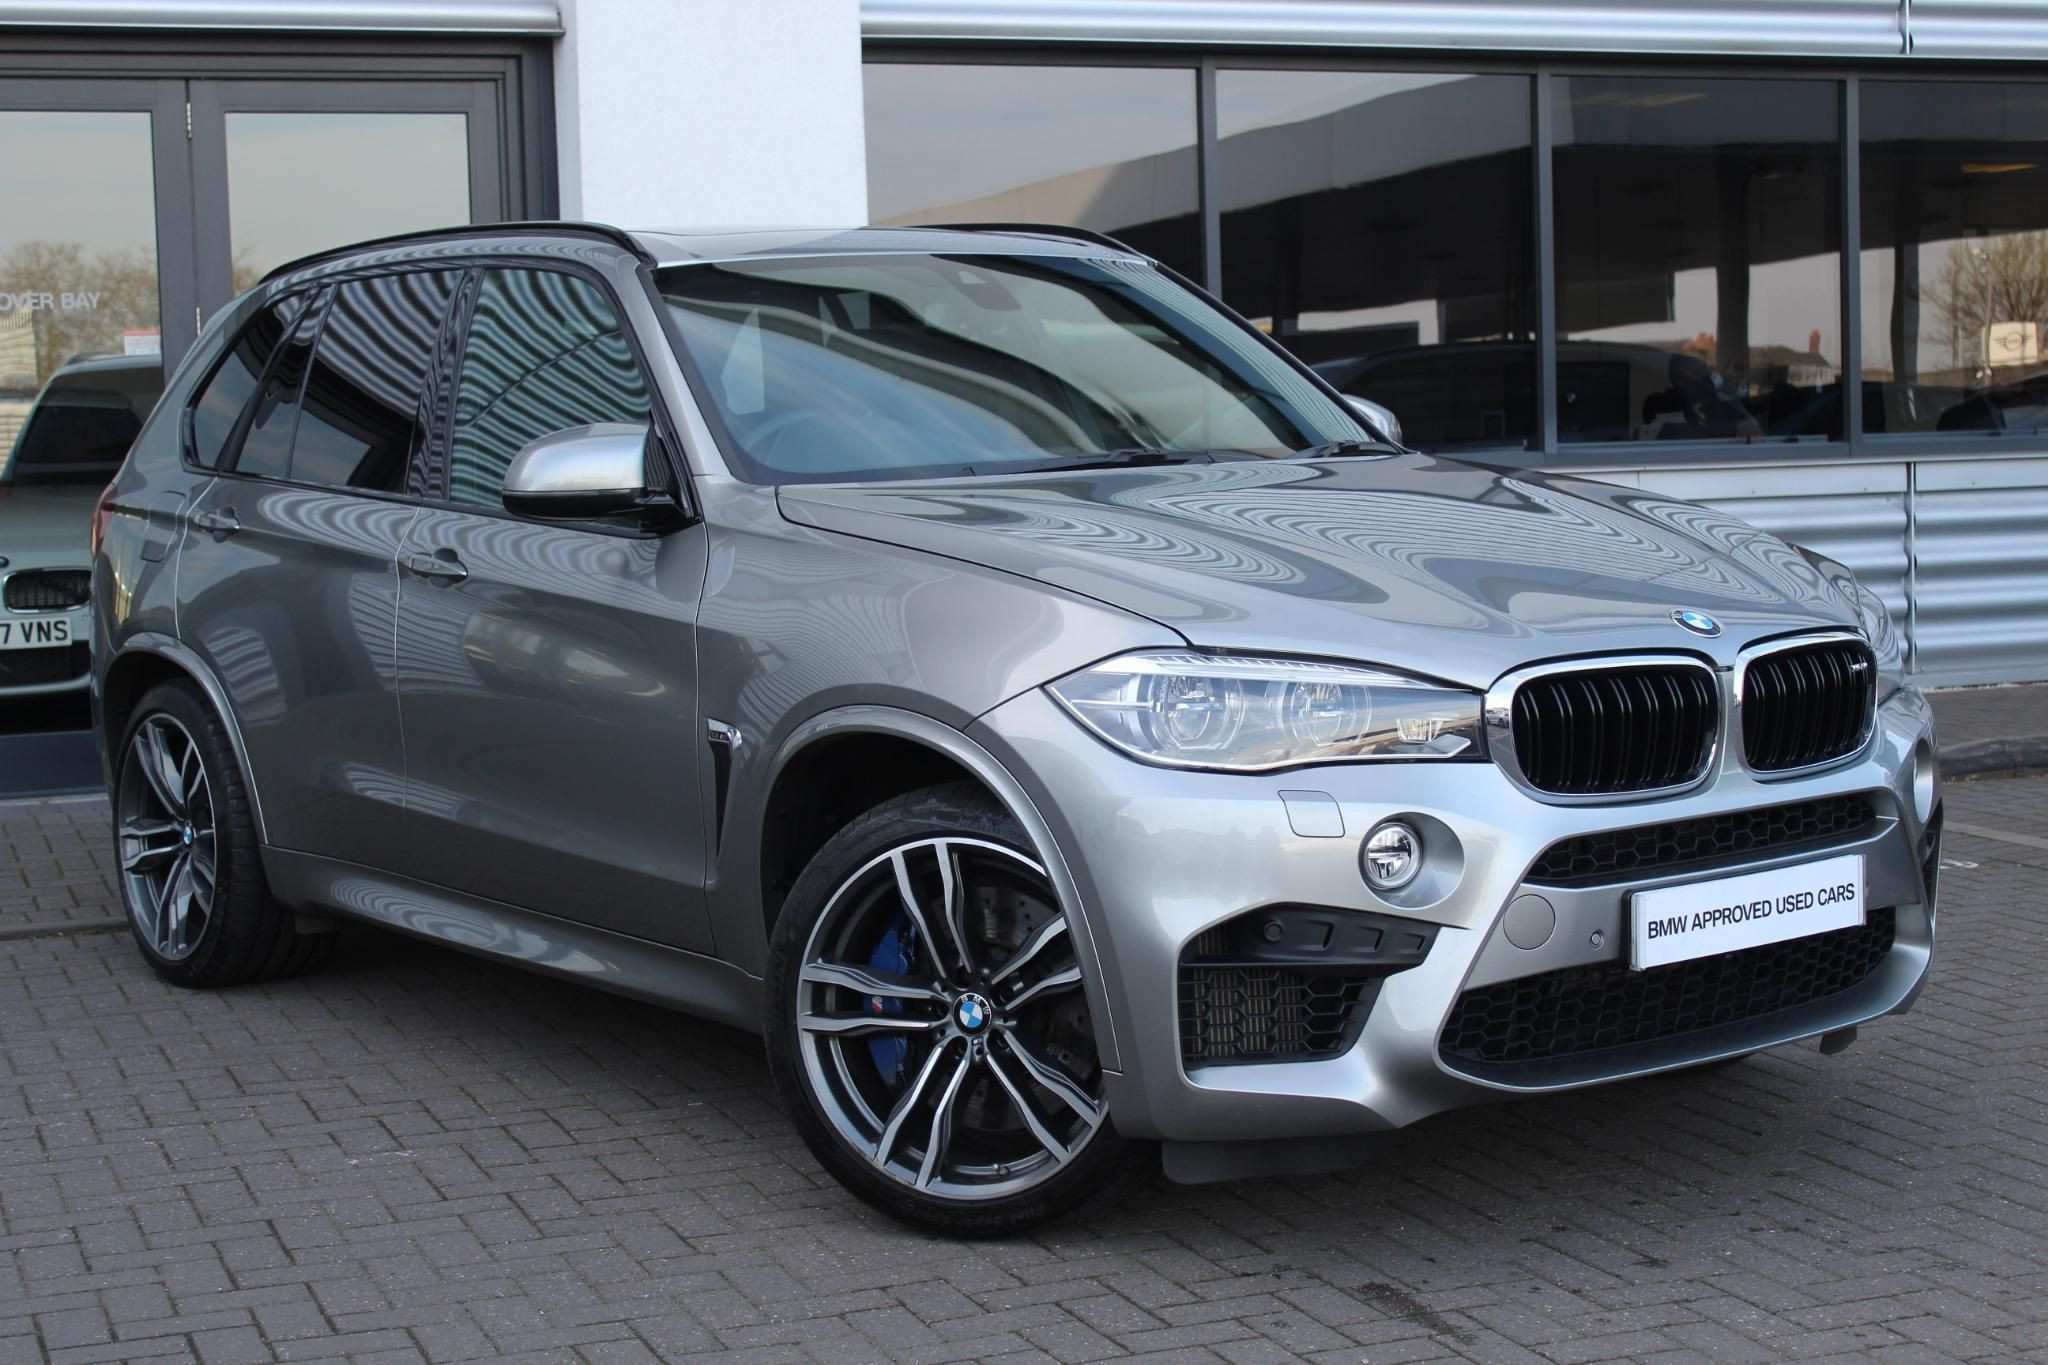 my dream car best of new and used bmw x5m cars for sale images of my dream car